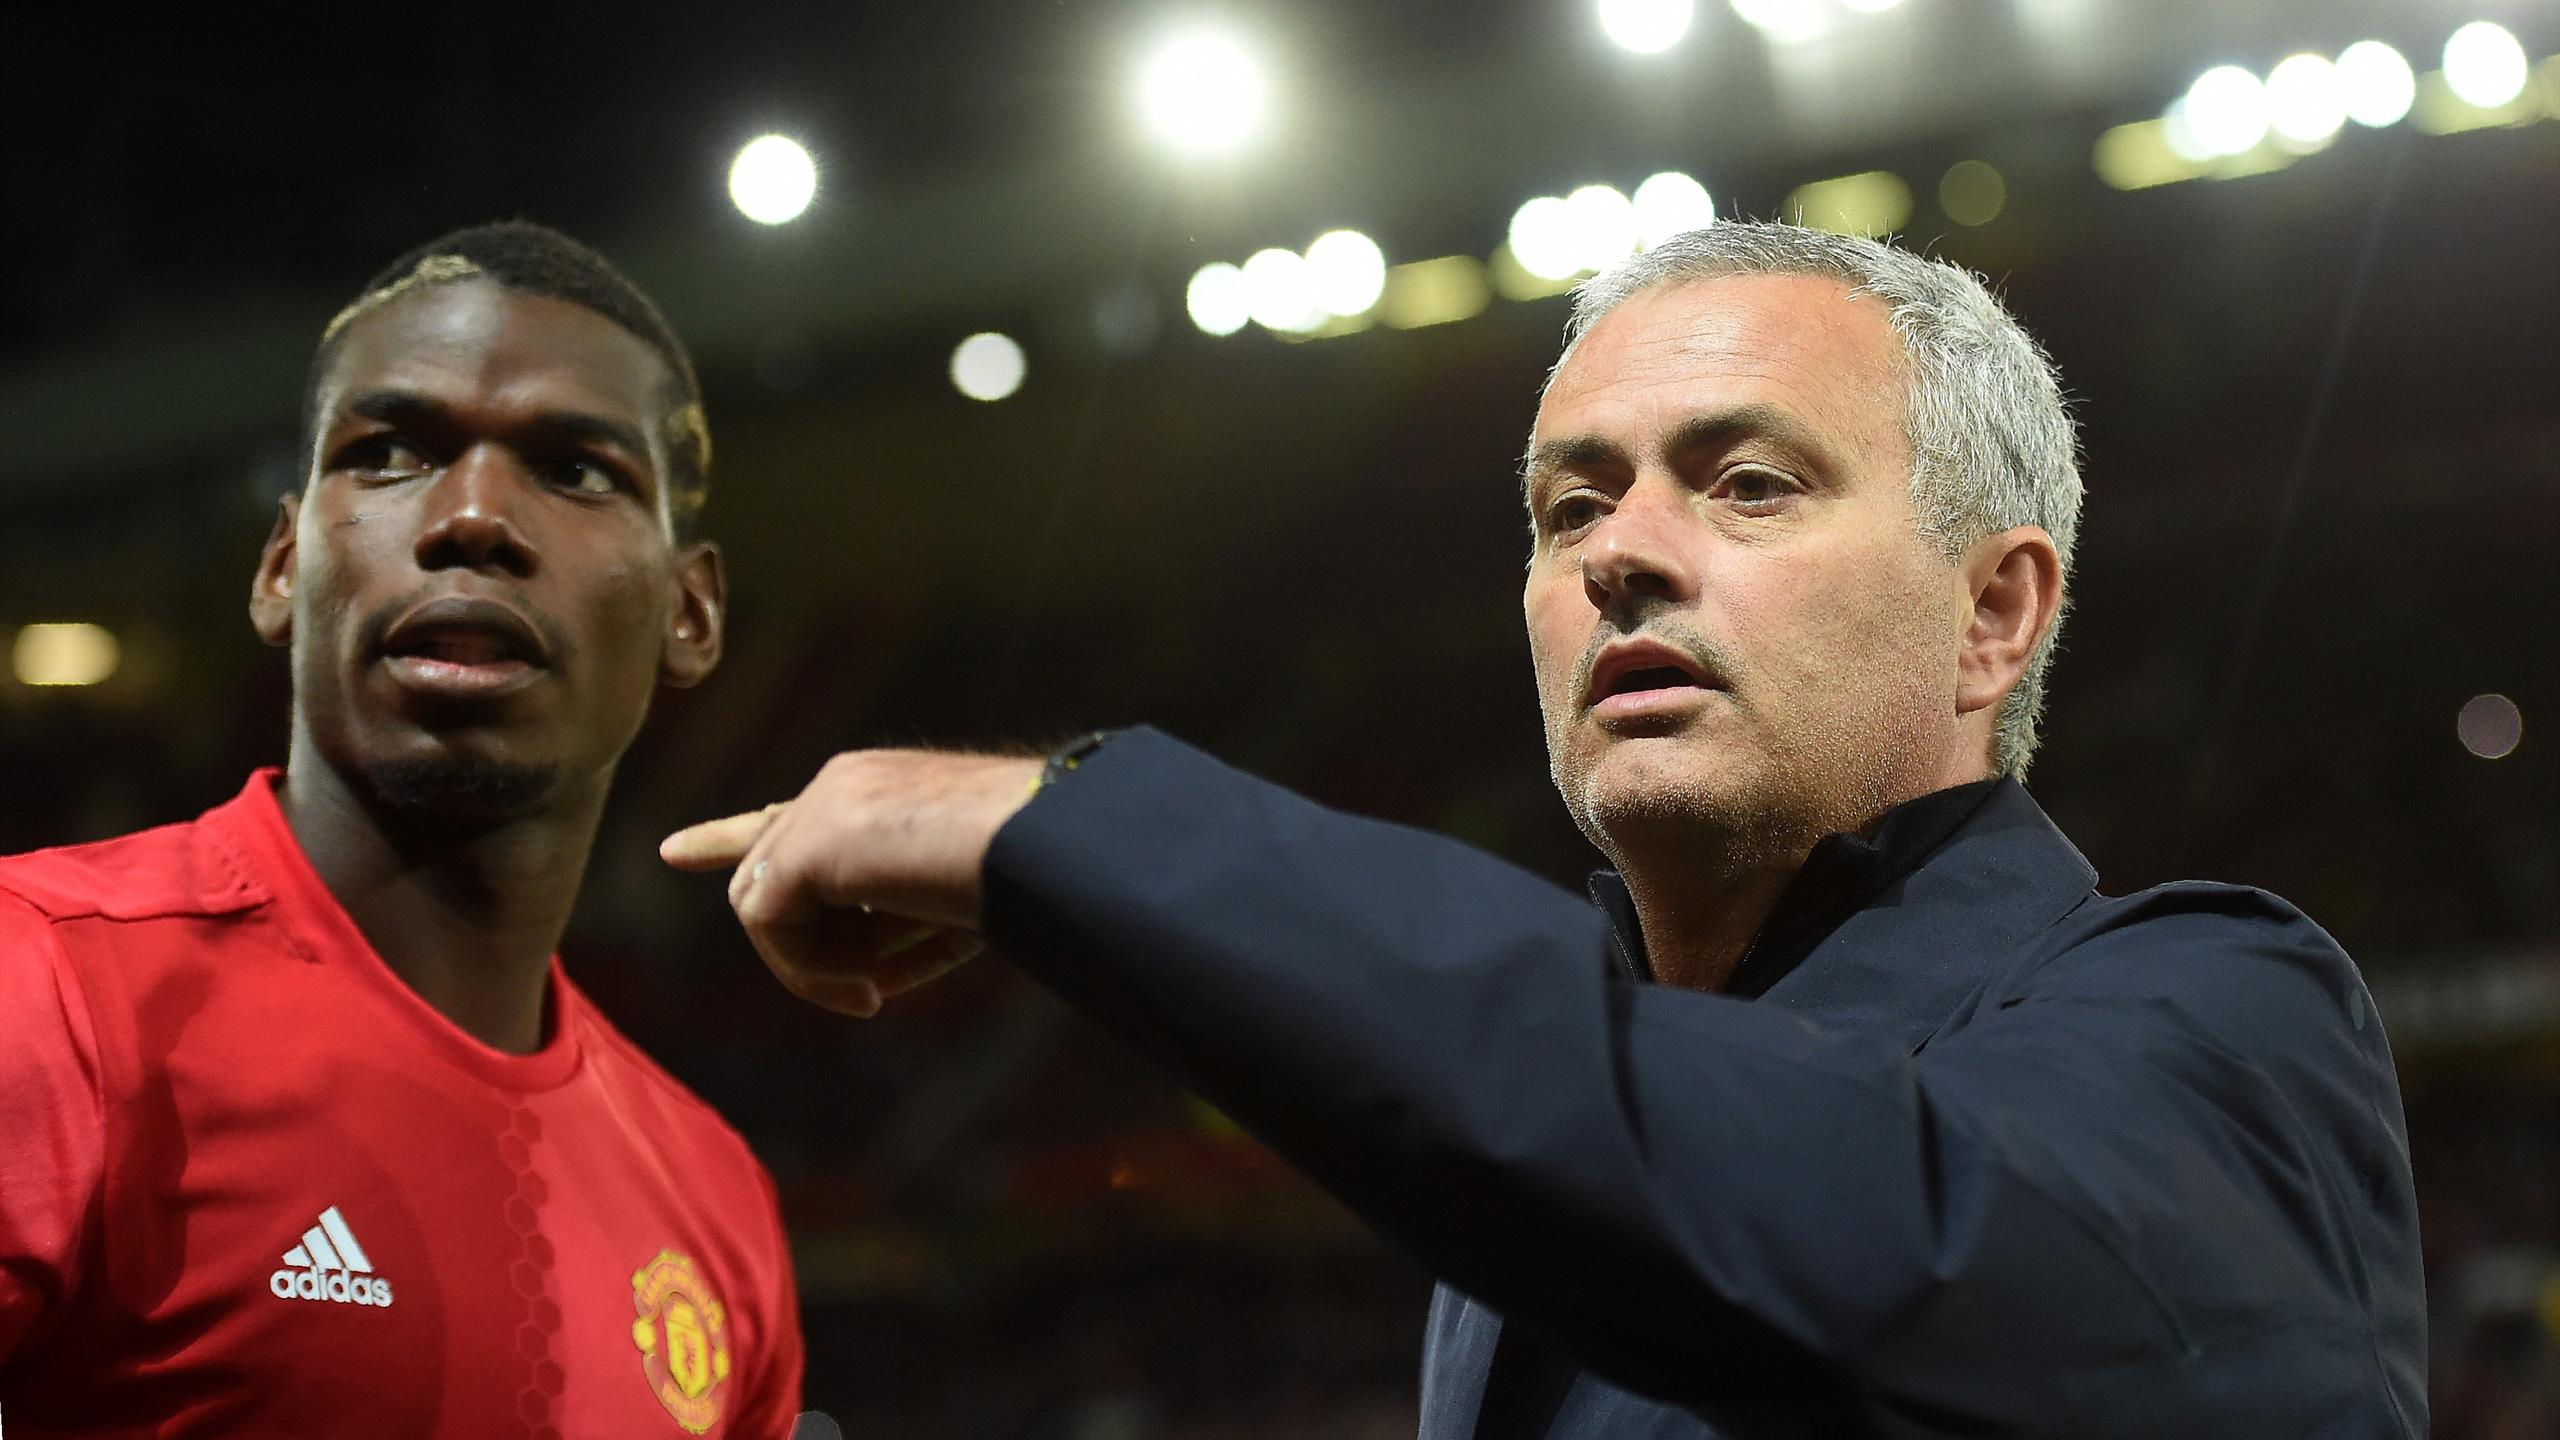 Manchester United's Portuguese manager Jose Mourinho (R) gestures to Manchester United's French midfielder Paul Pogba